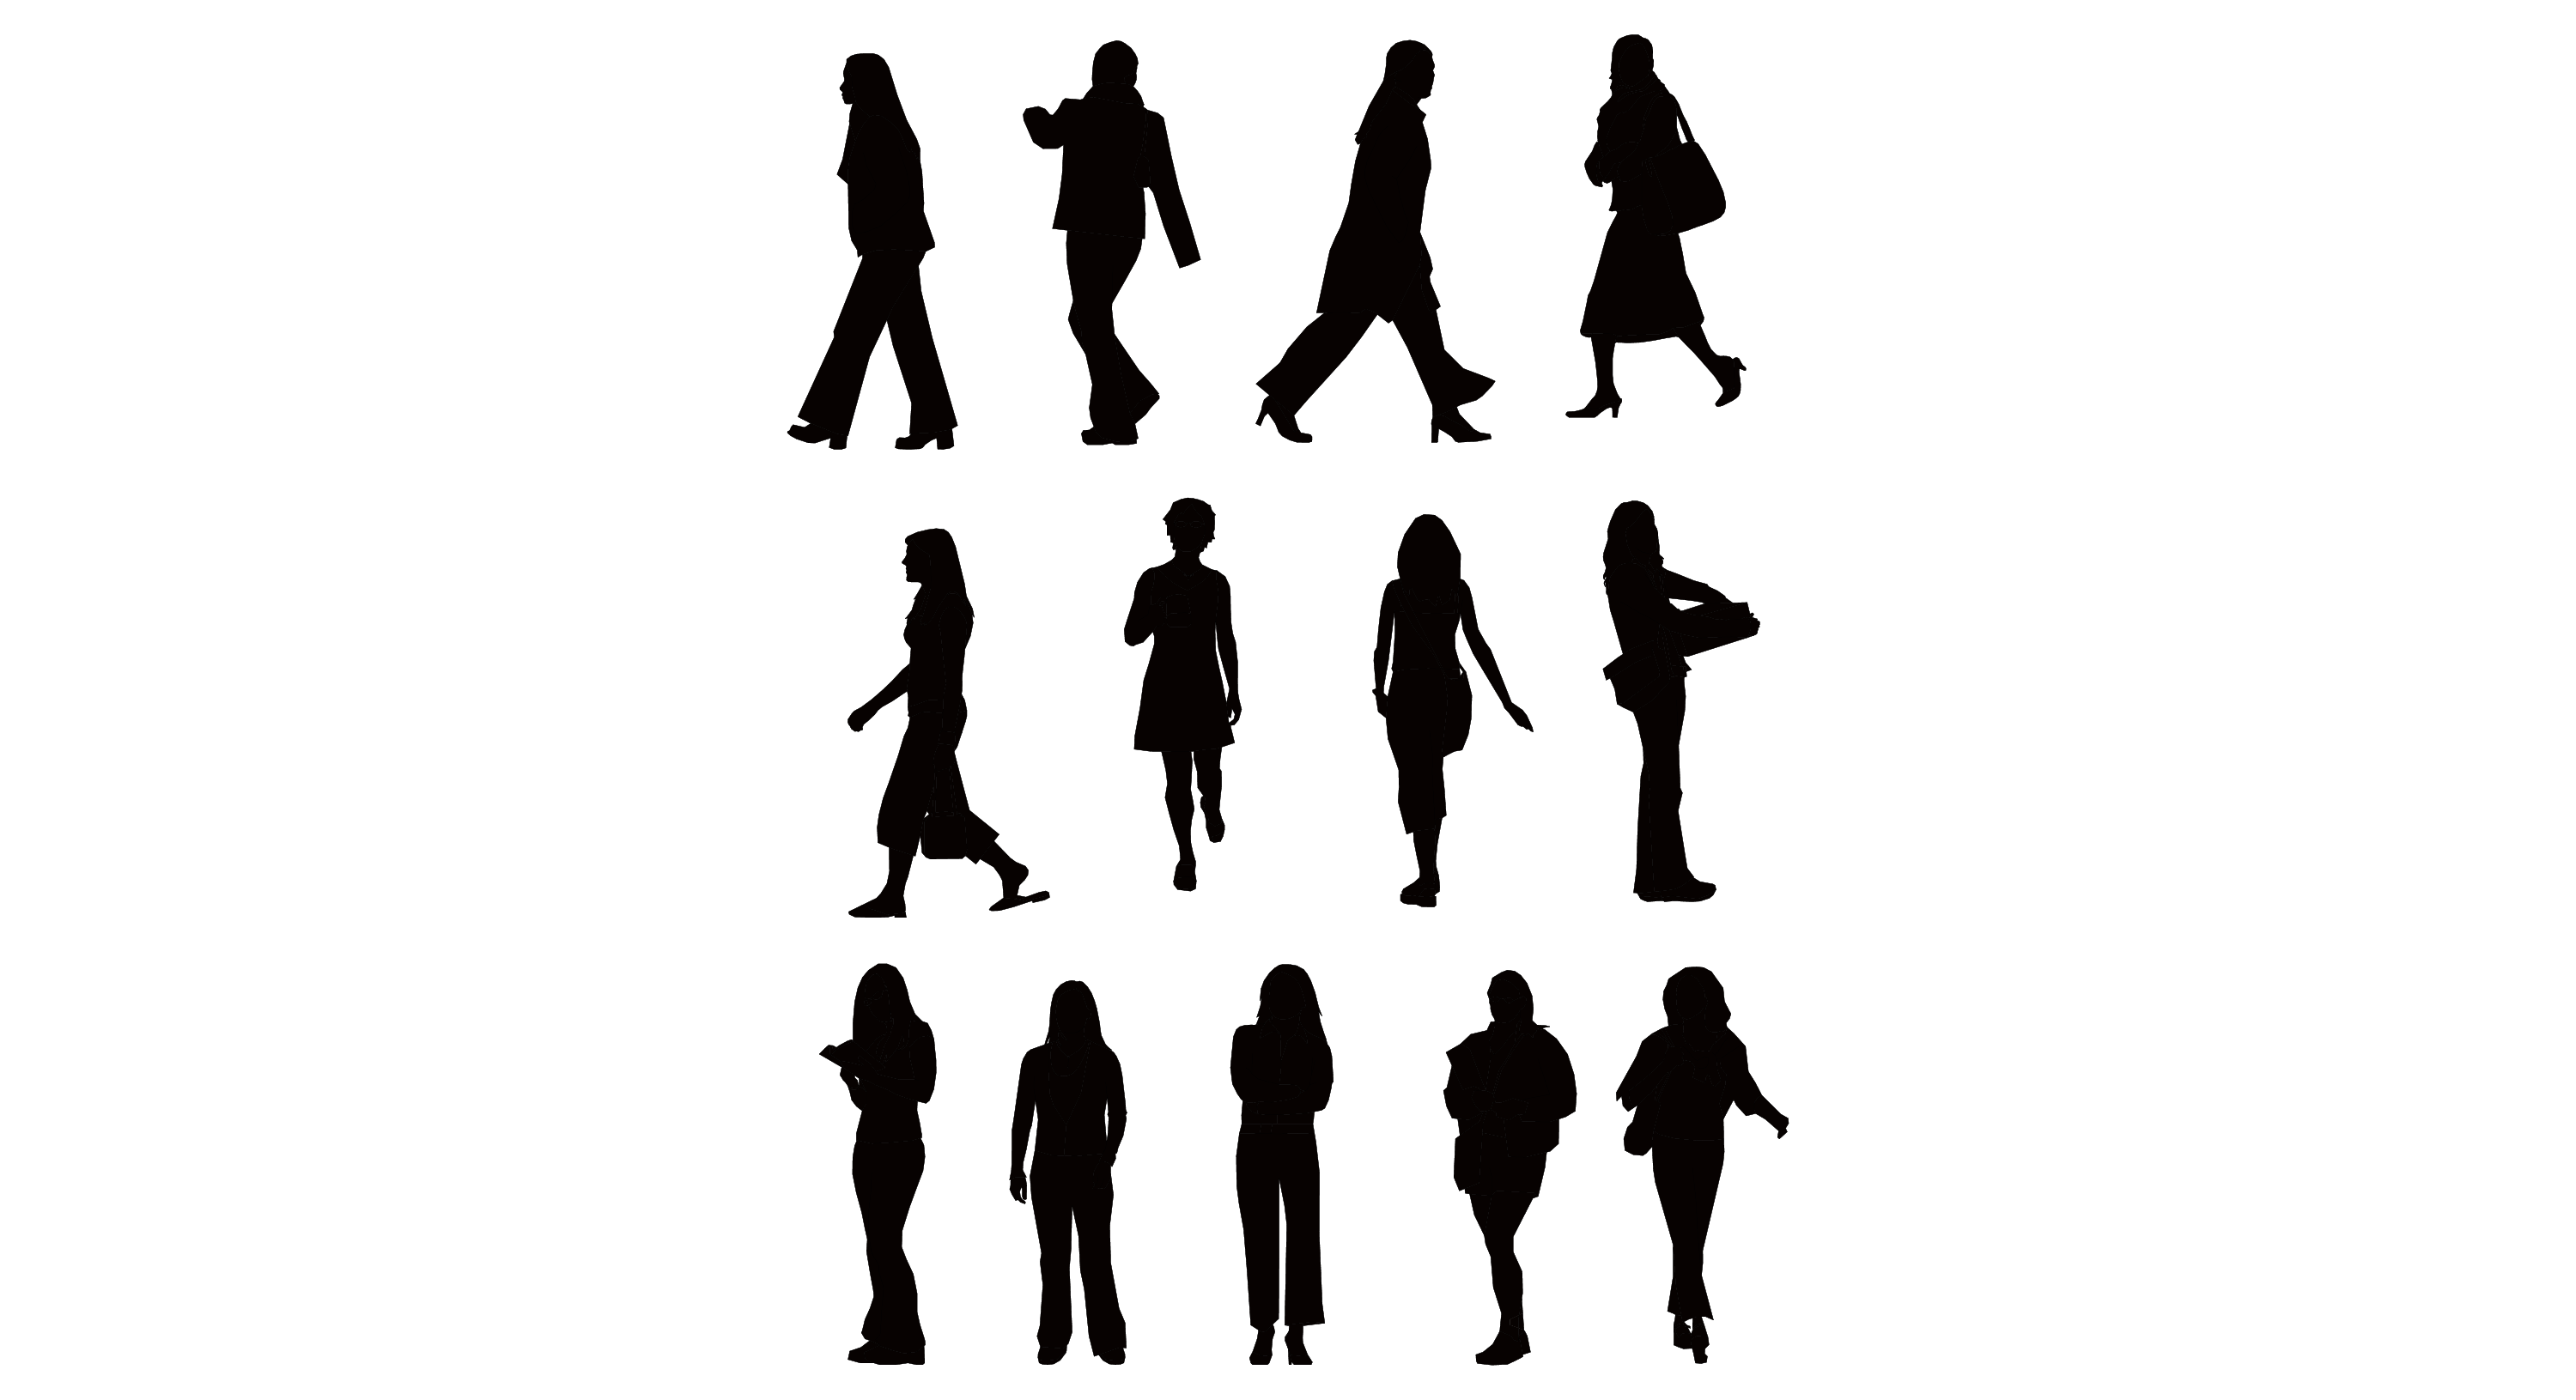 Silhouette Pictures at GetDrawings.com.